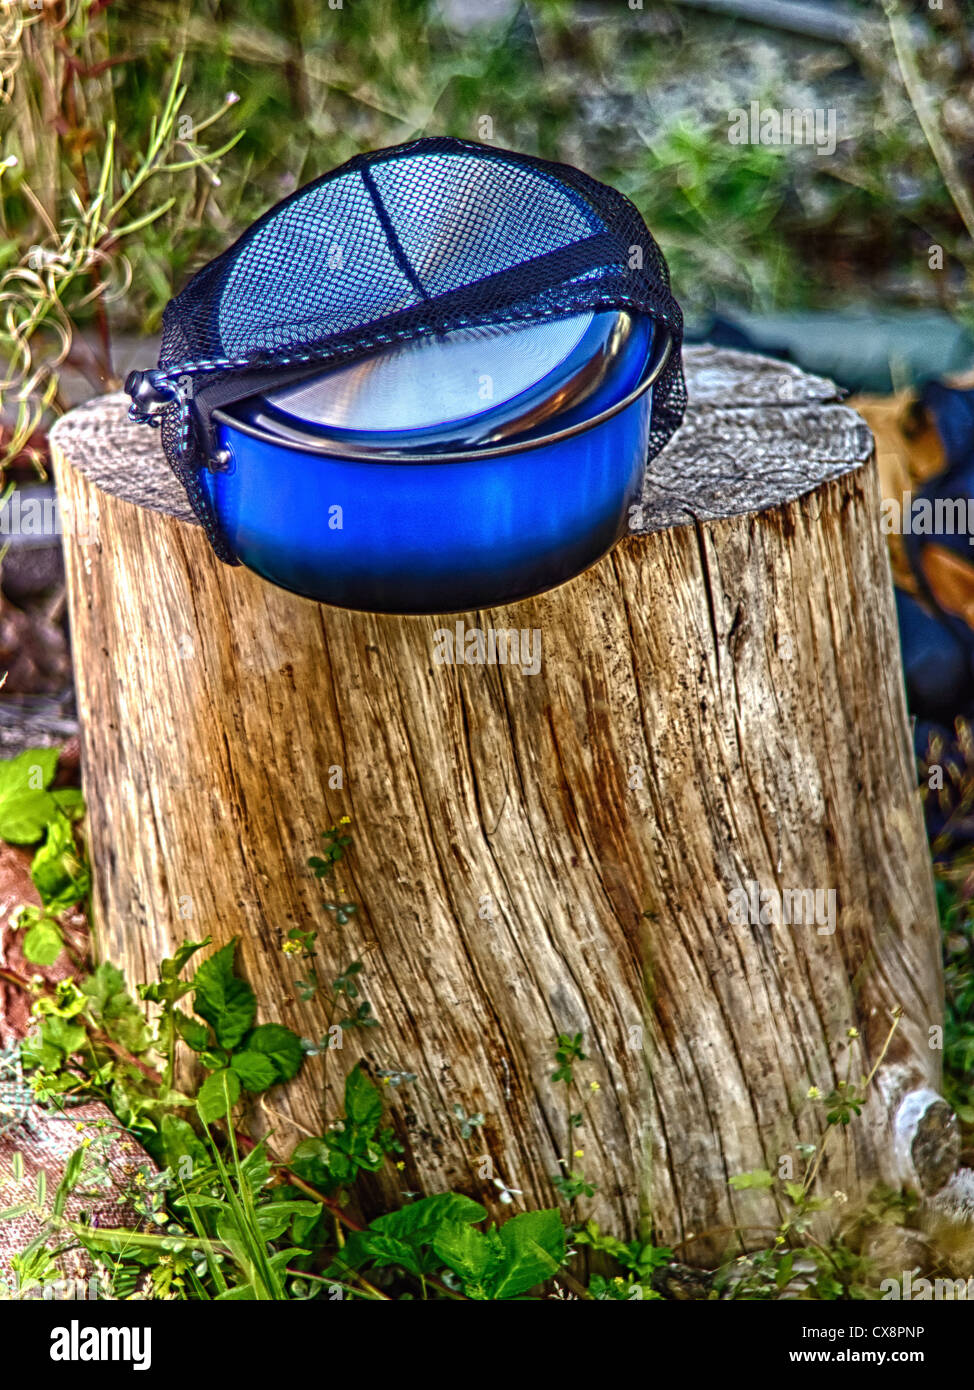 Colorful Blue Stackable Hiking or Camping Pots and Pans - Stock Image